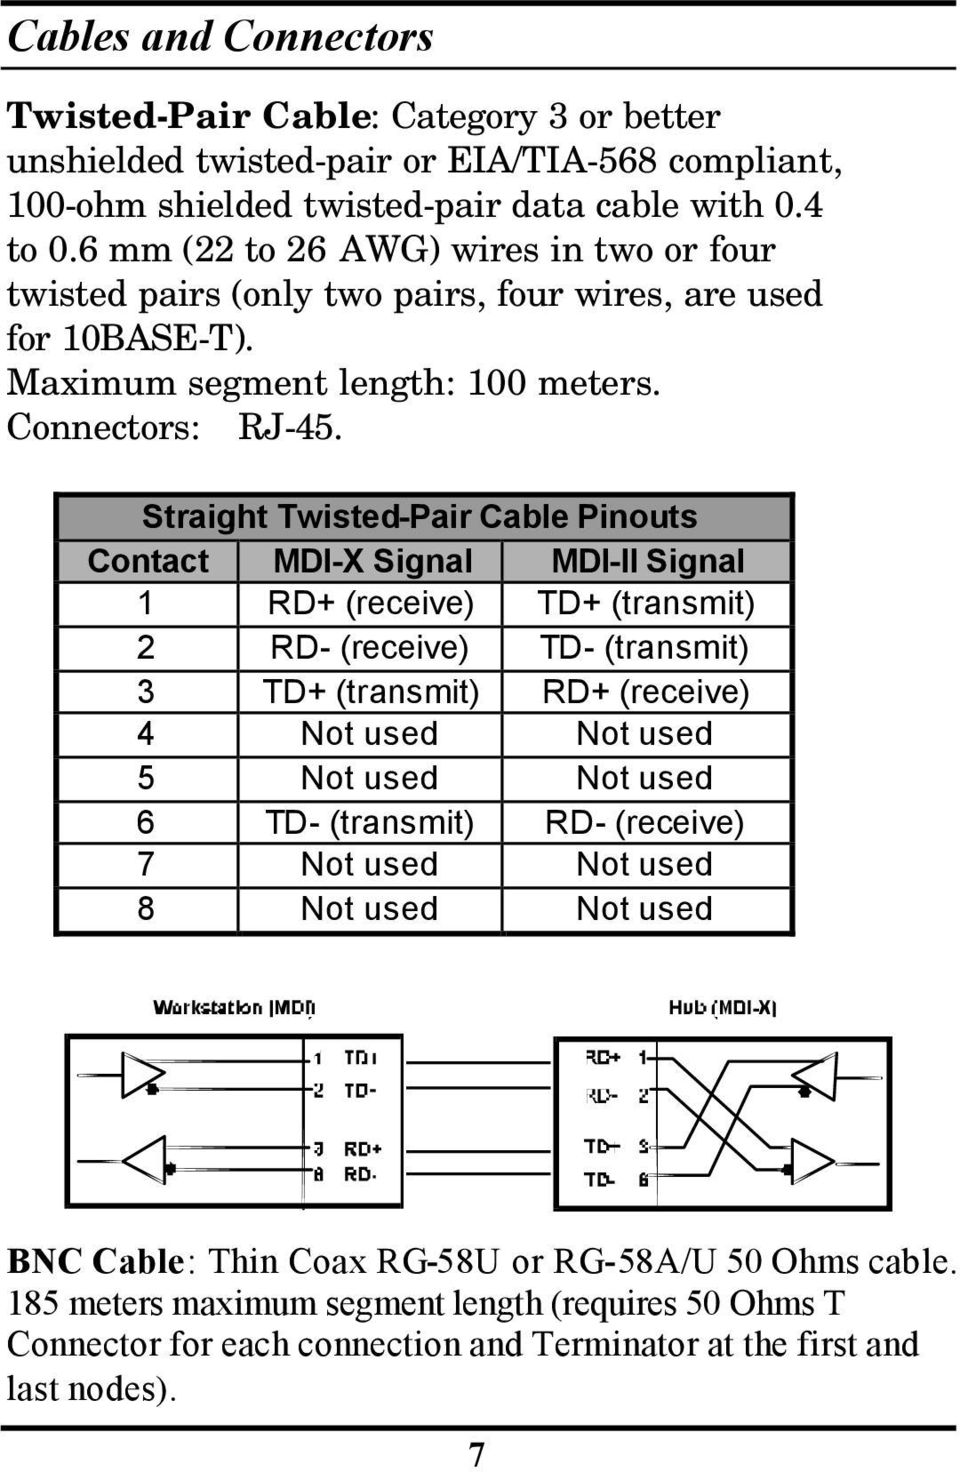 Straight Twisted-Pair Cable Pinouts Contact MDI-X Signal MDI-II Signal 1 RD+ (receive) TD+ (transmit) 2 RD- (receive) TD- (transmit) 3 TD+ (transmit) RD+ (receive) 4 Not used Not used 5 Not used